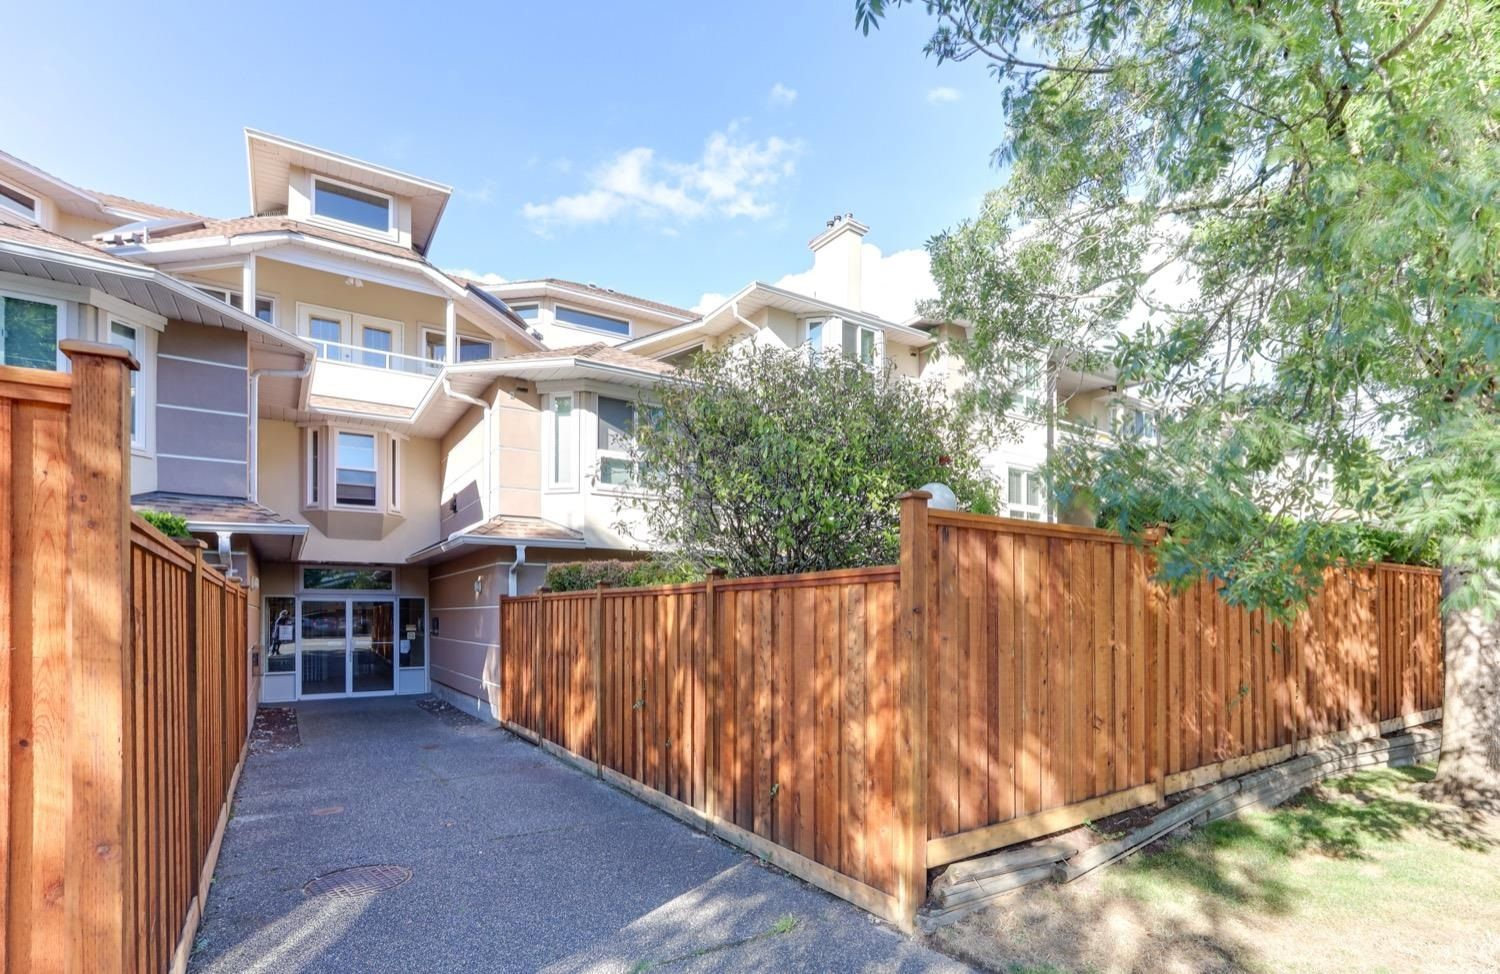 """Main Photo: 208 19721 64 Avenue in Langley: Willoughby Heights Condo for sale in """"Westside Estates"""" : MLS®# R2616852"""